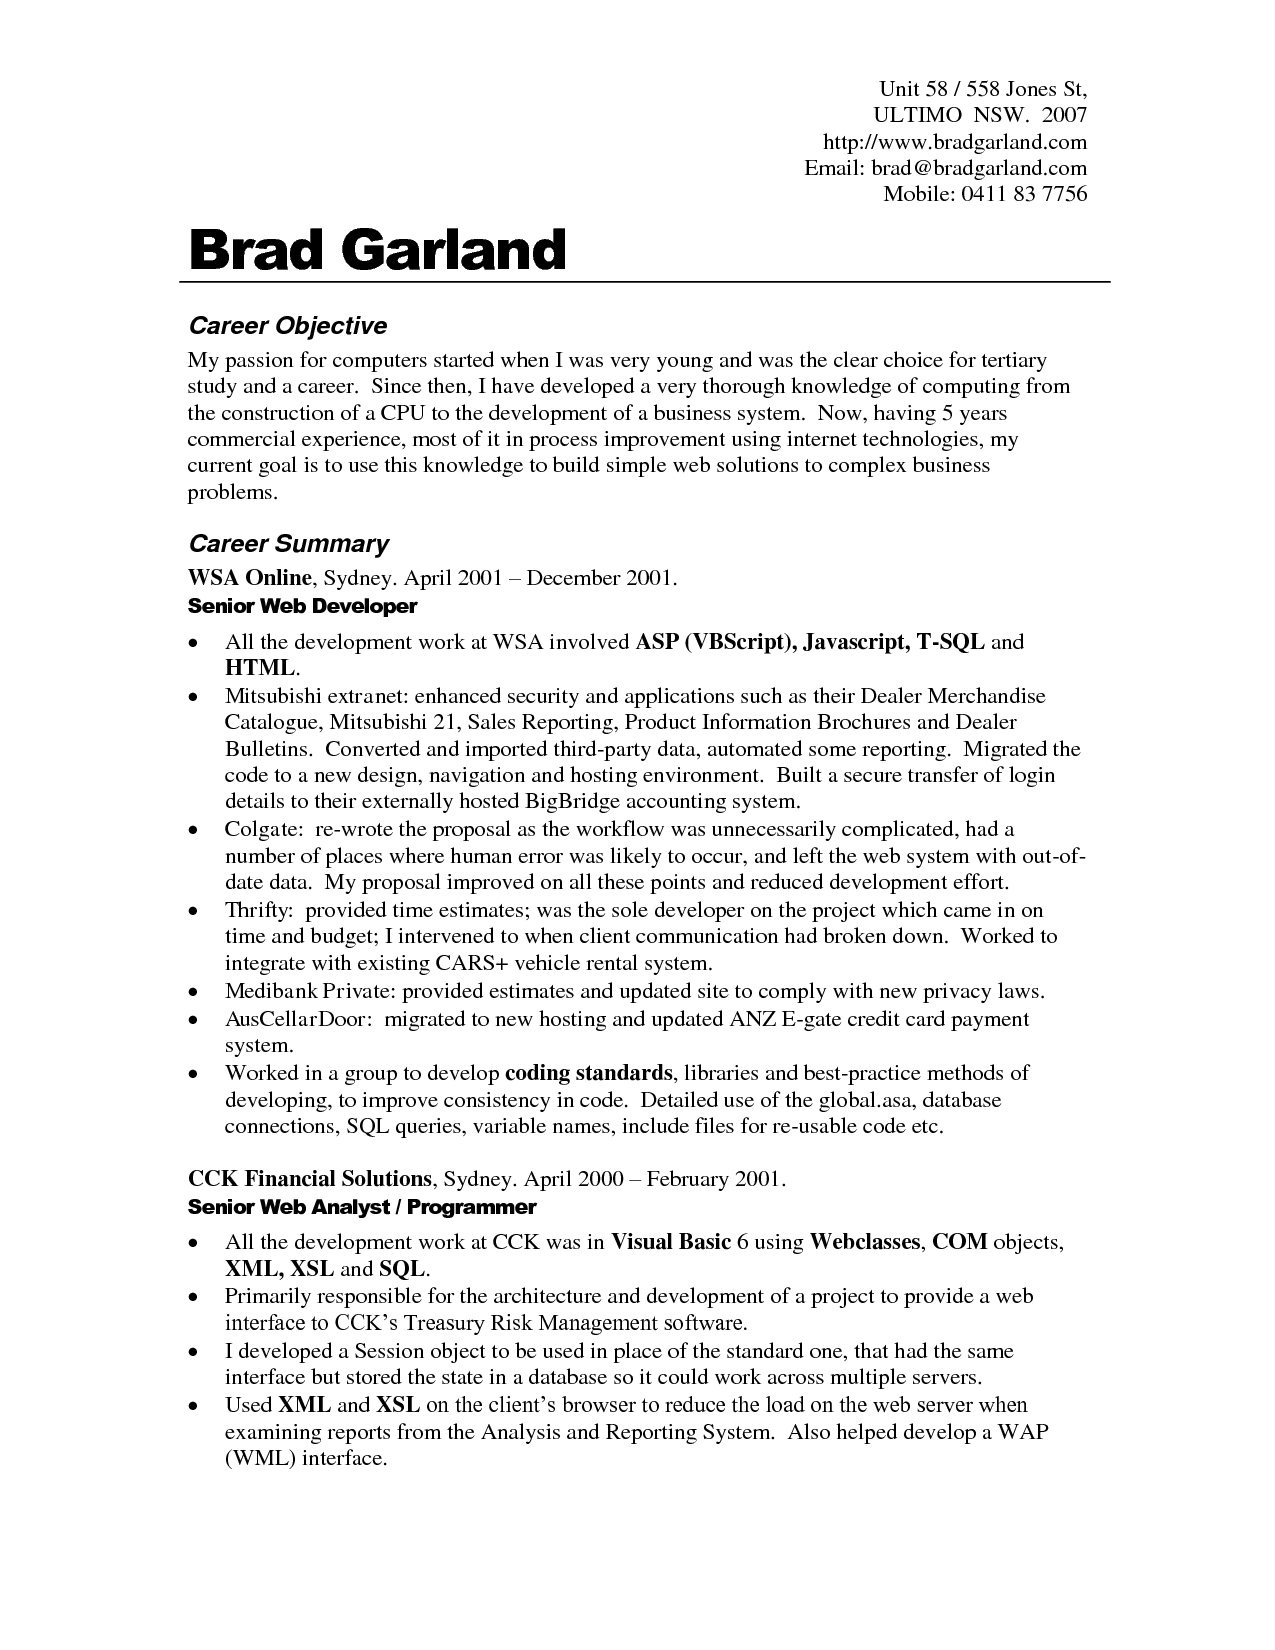 Resume Objective Ideas Resume Objectives Examples Best Templateresume Objective Examples